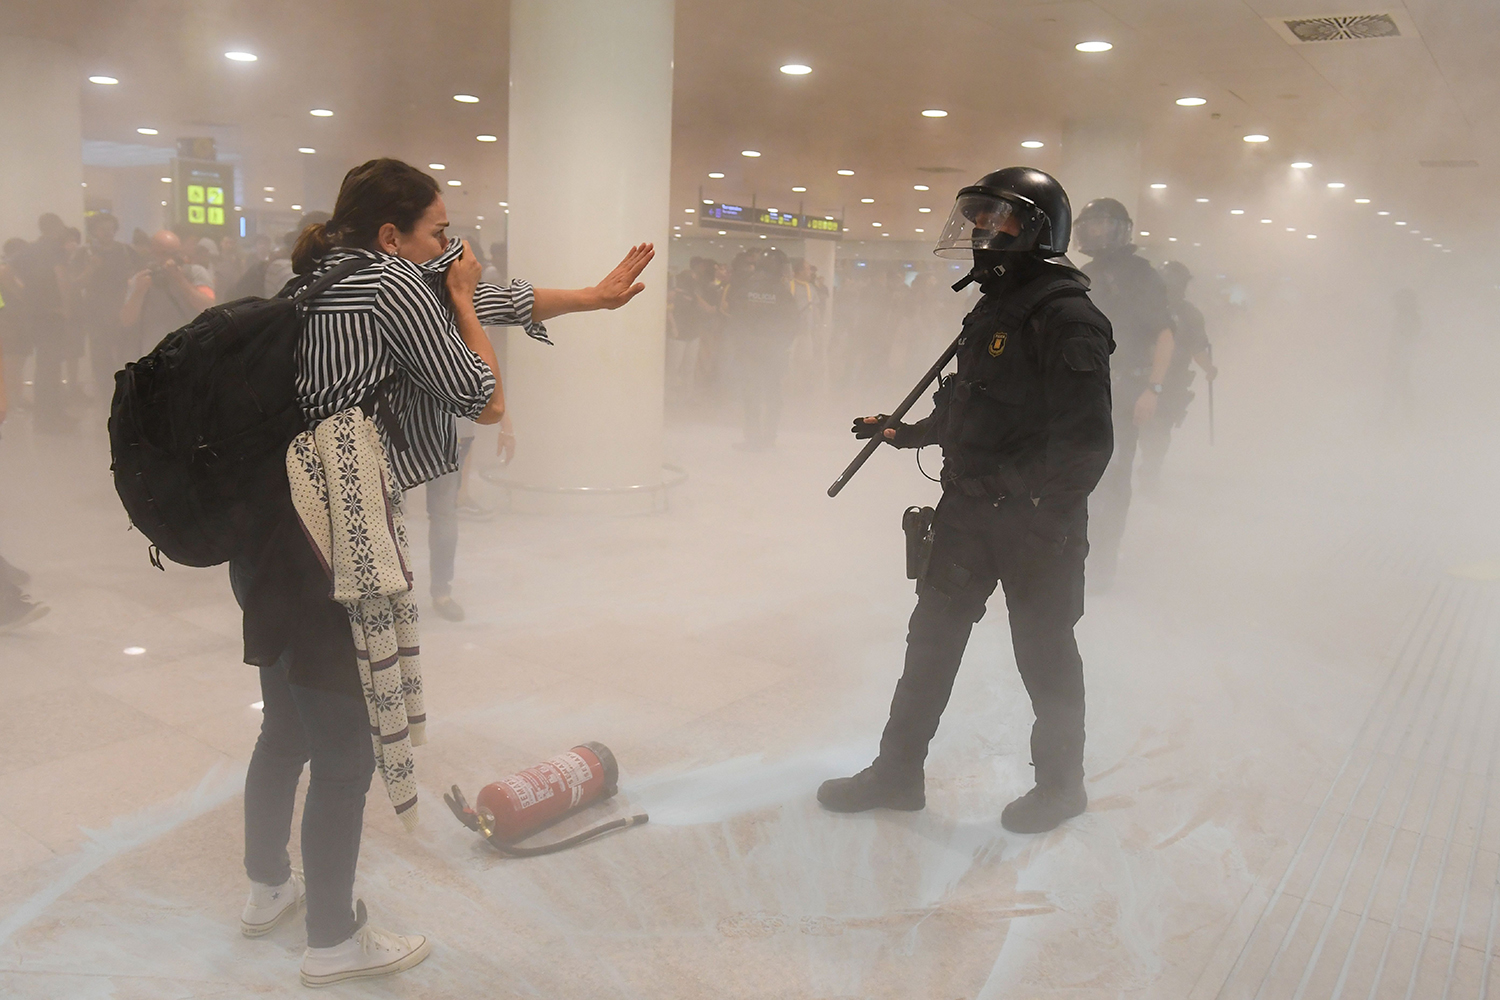 SPAIN | A protester protects her face in front of a policemen inside El Prat airport in Barcelona on Oct. 14, as thousands took to the streets after Spain's Supreme Court sentenced nine Catalan separatist leaders to between nine and 13 years in jail for sedition over the failed 2017 independence bid. JOSEP LAGO/AFP via Getty Images